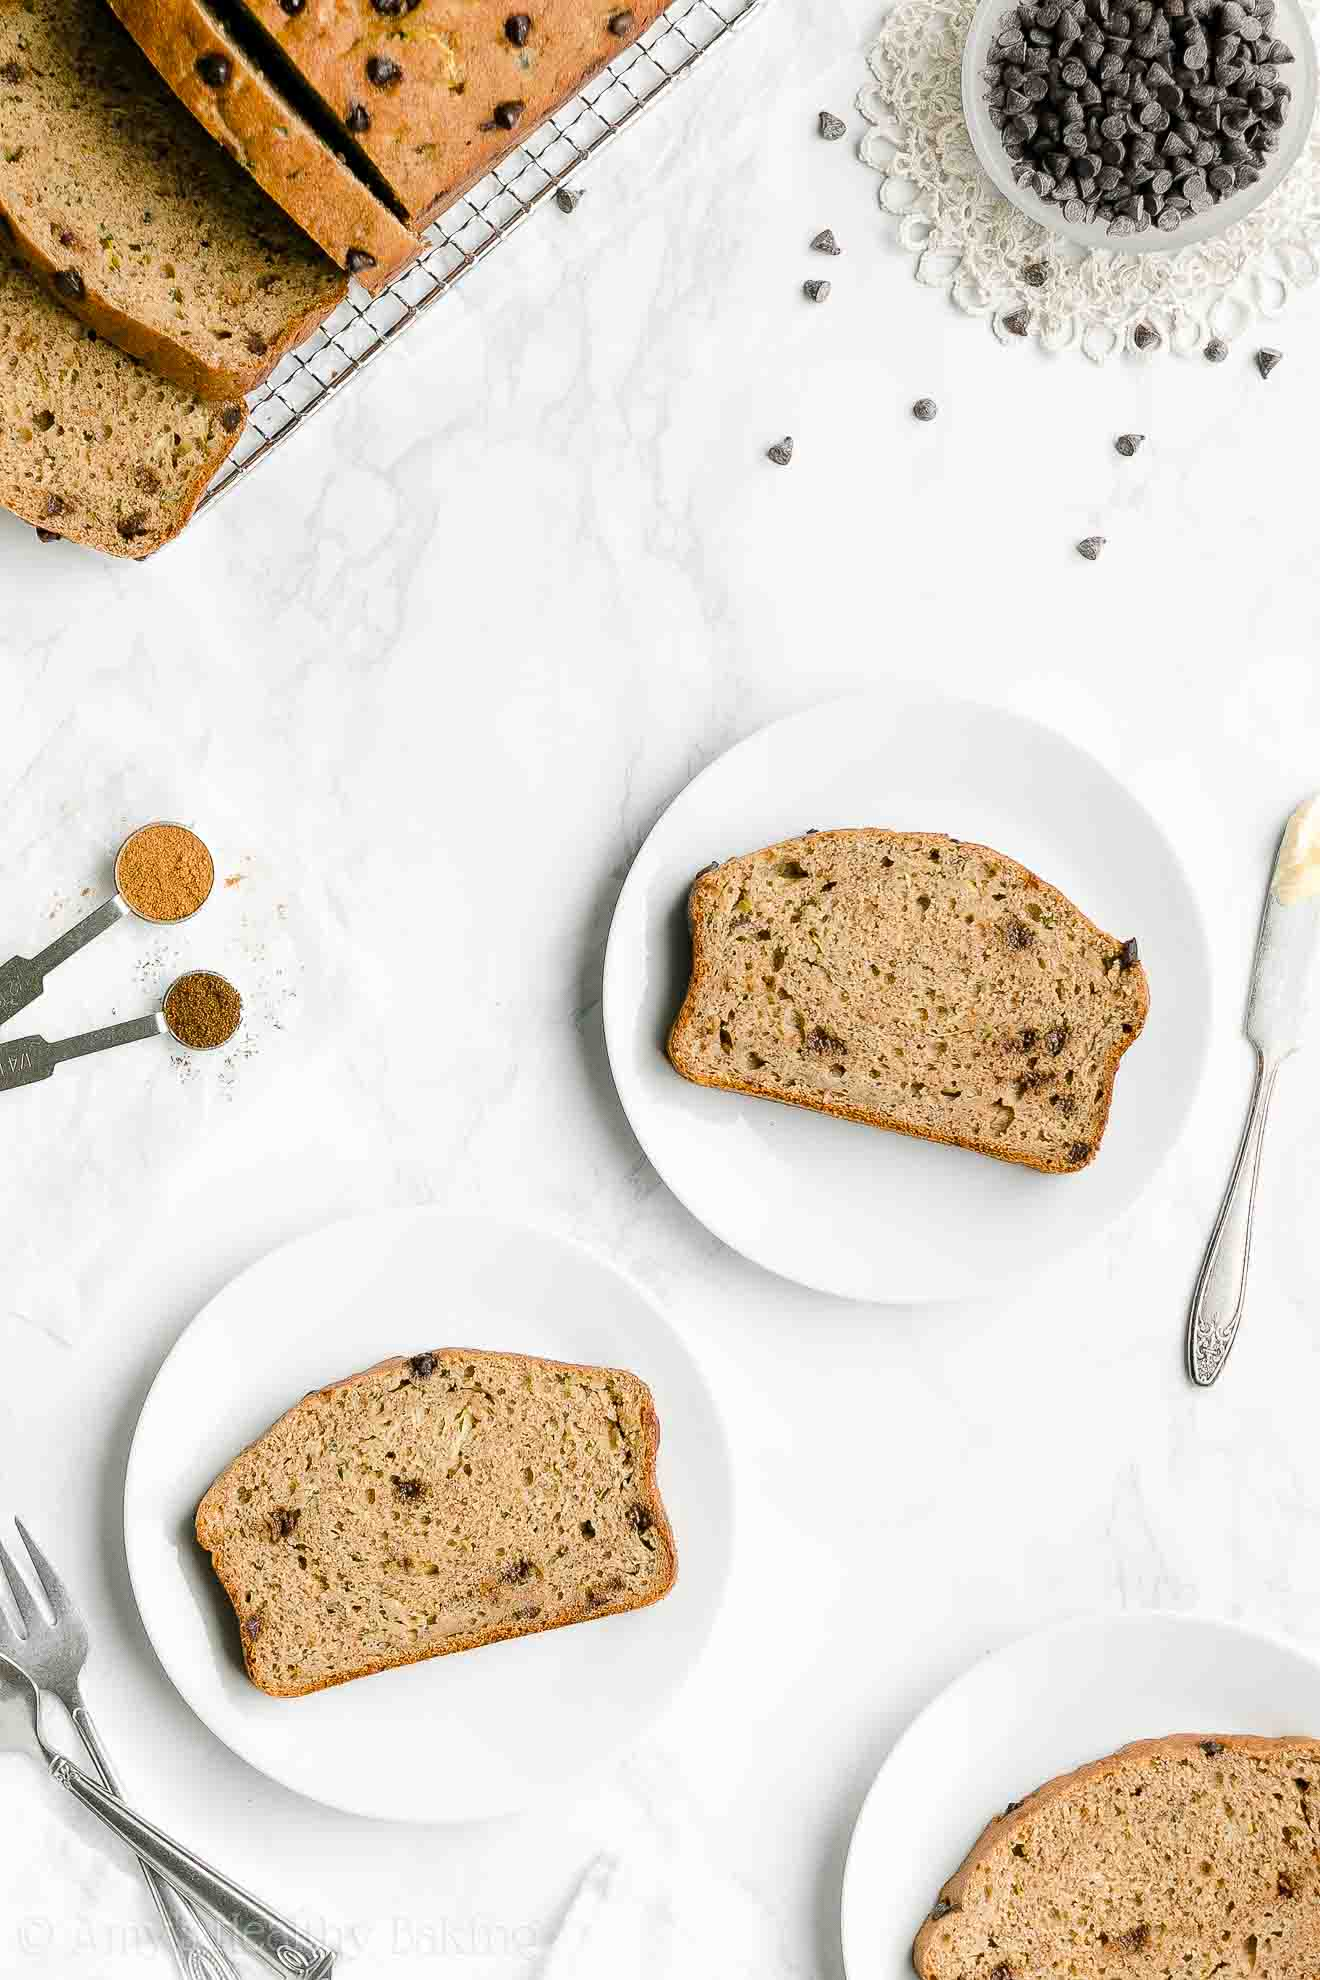 Simple Healthy Gluten Free Chocolate Chip Zucchini Banana Bread